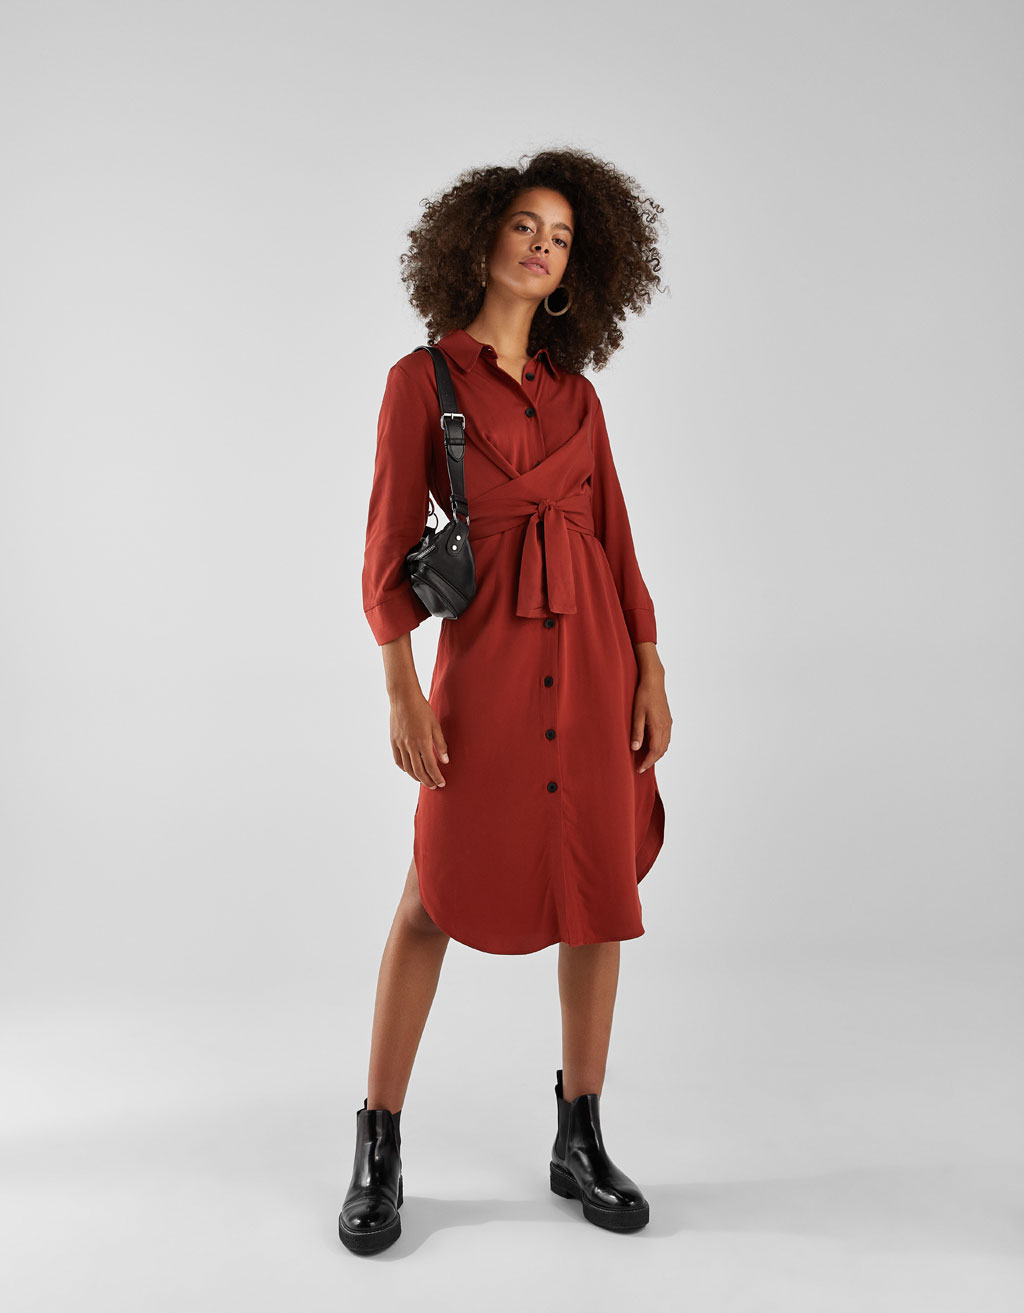 Lange shirtdress met ceintuur